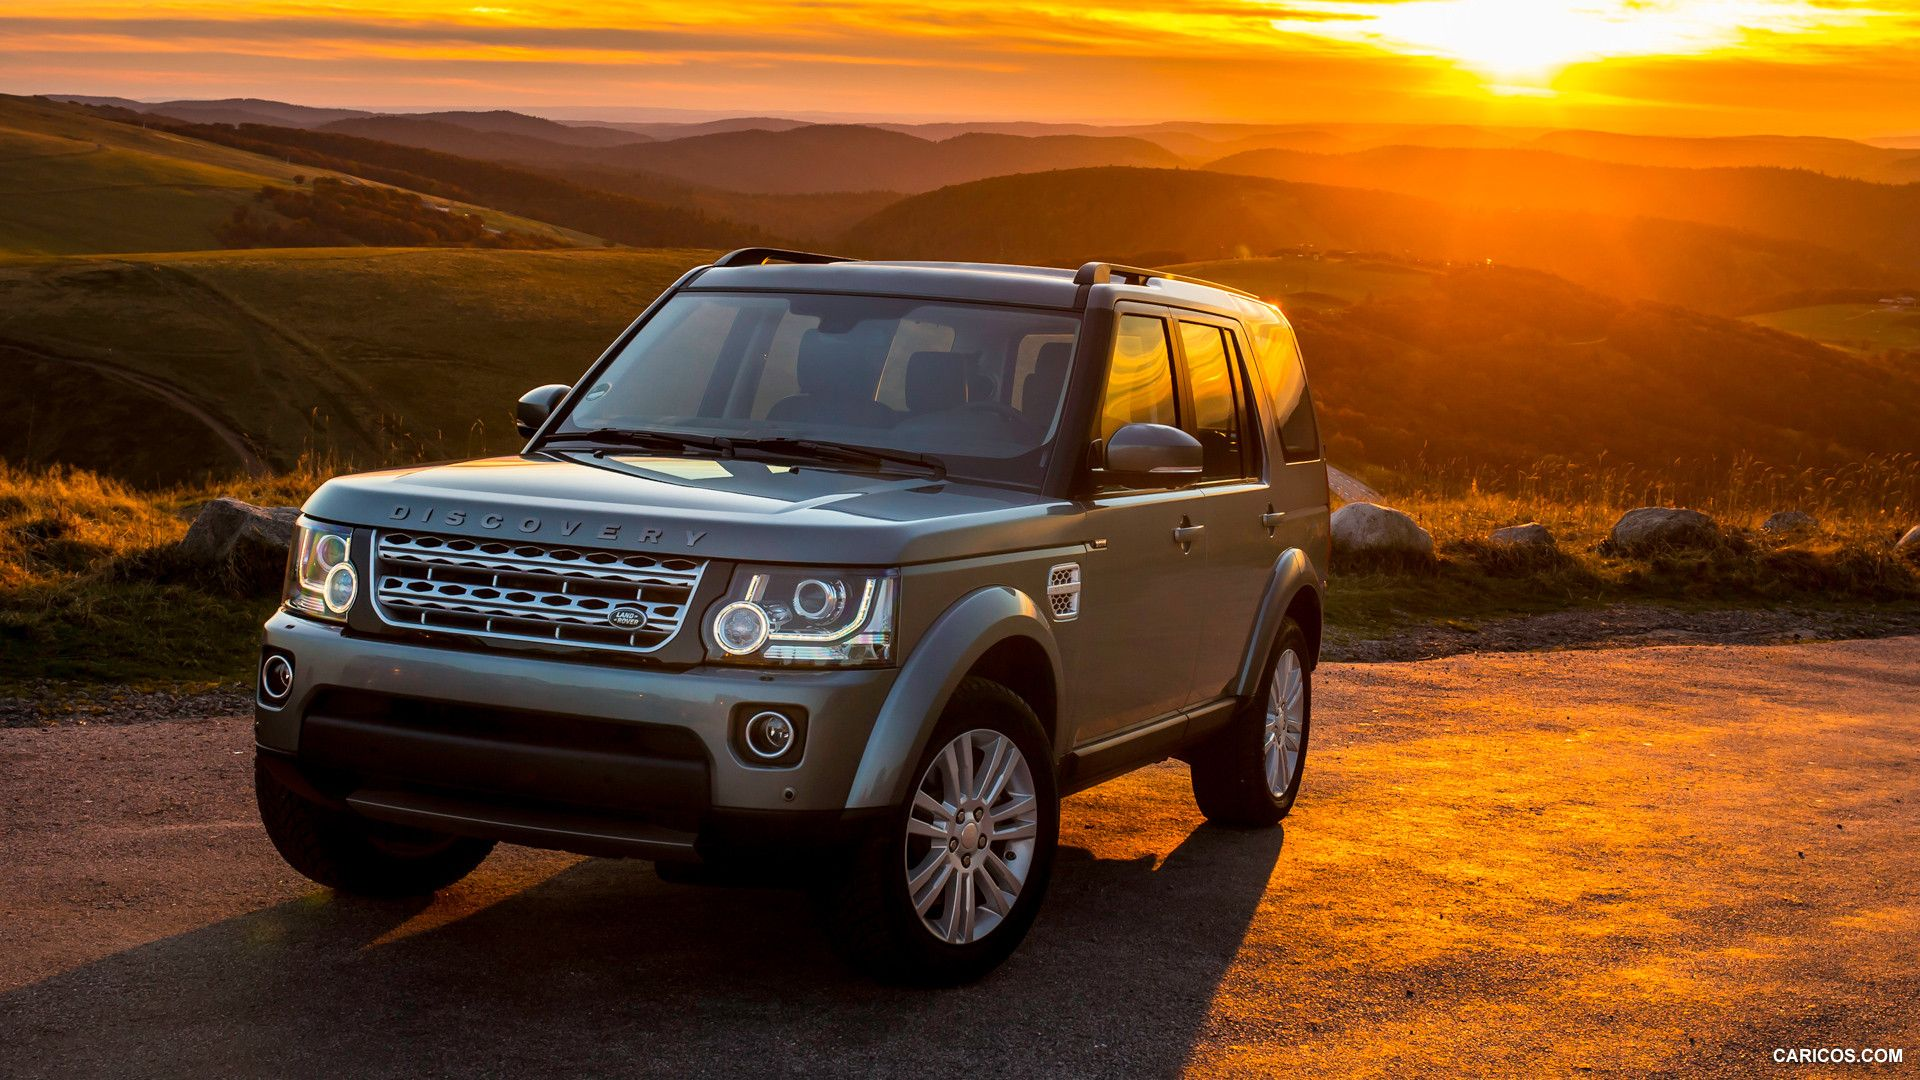 2014 Land Rover Discovery Wallpaper Land Rover Discovery Land